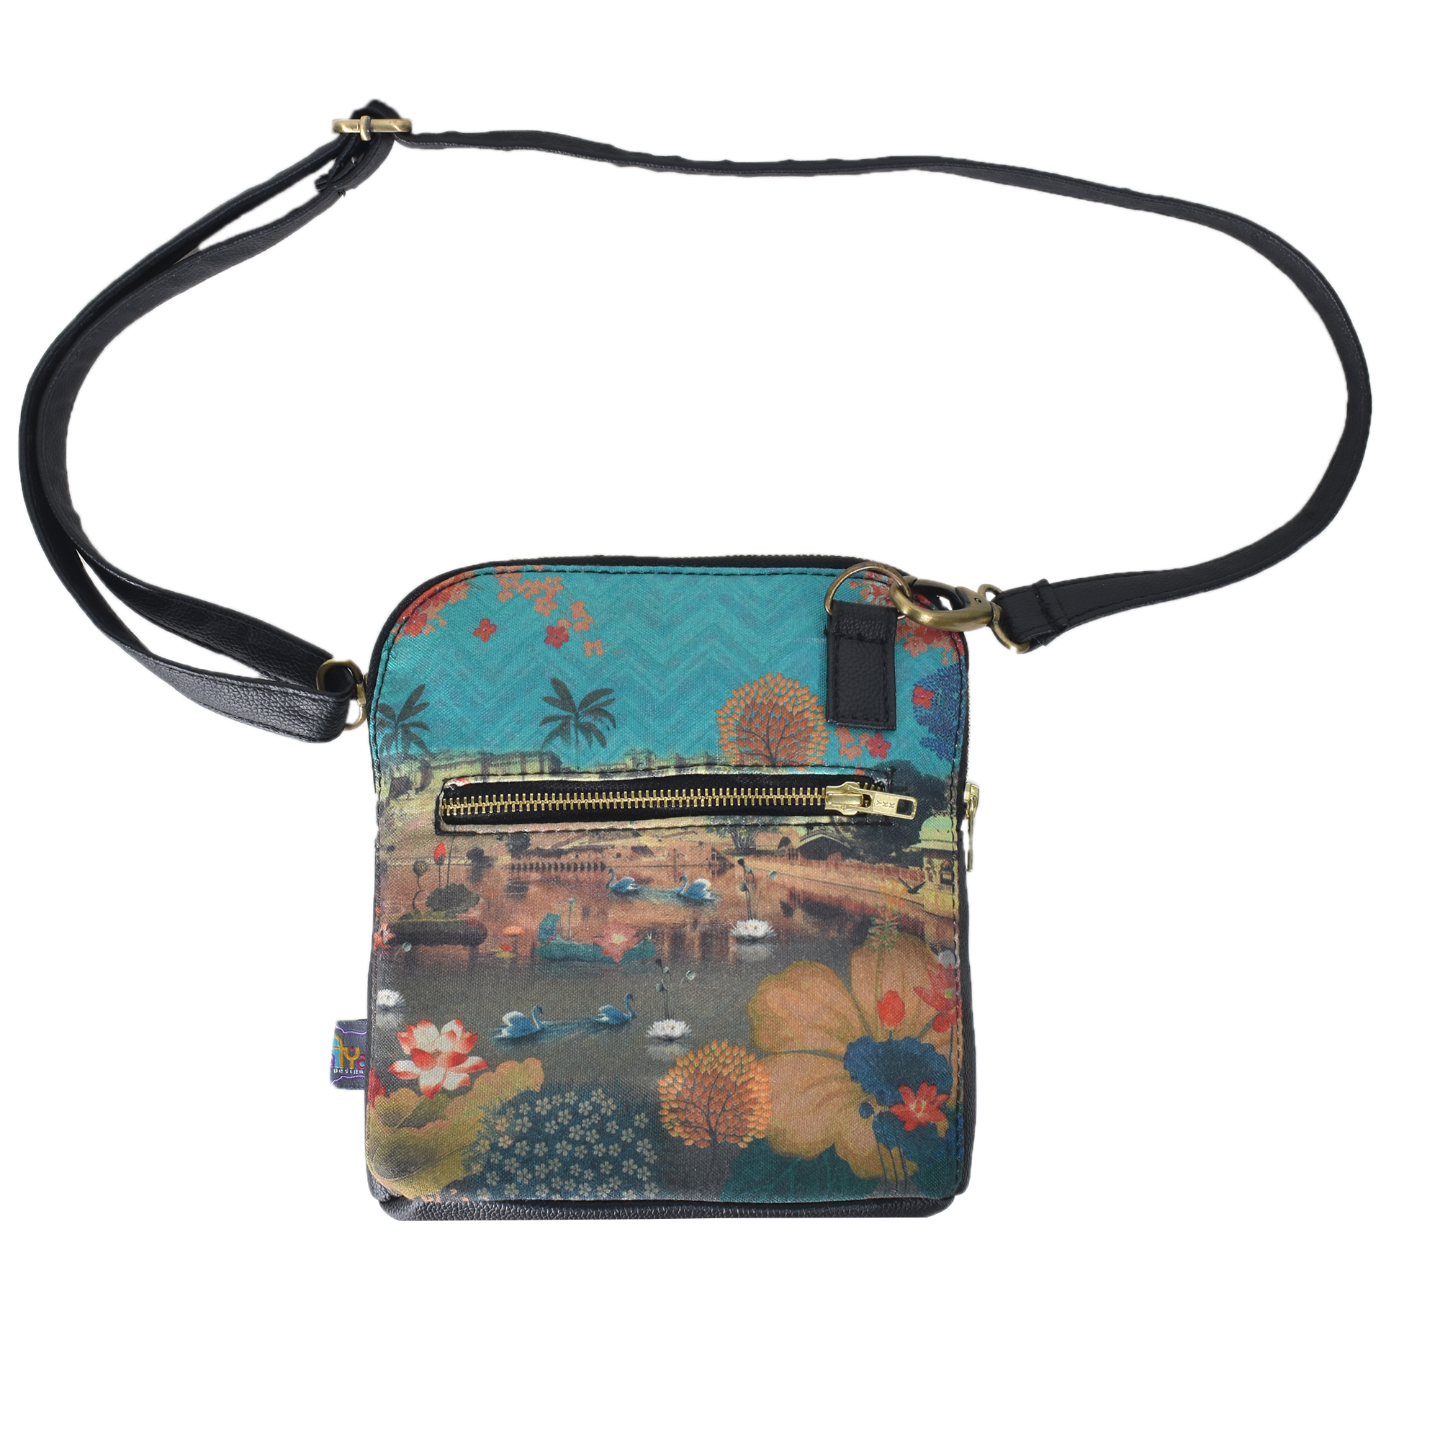 Beautiful Lakeside Crossbody Bag For Women And Girls